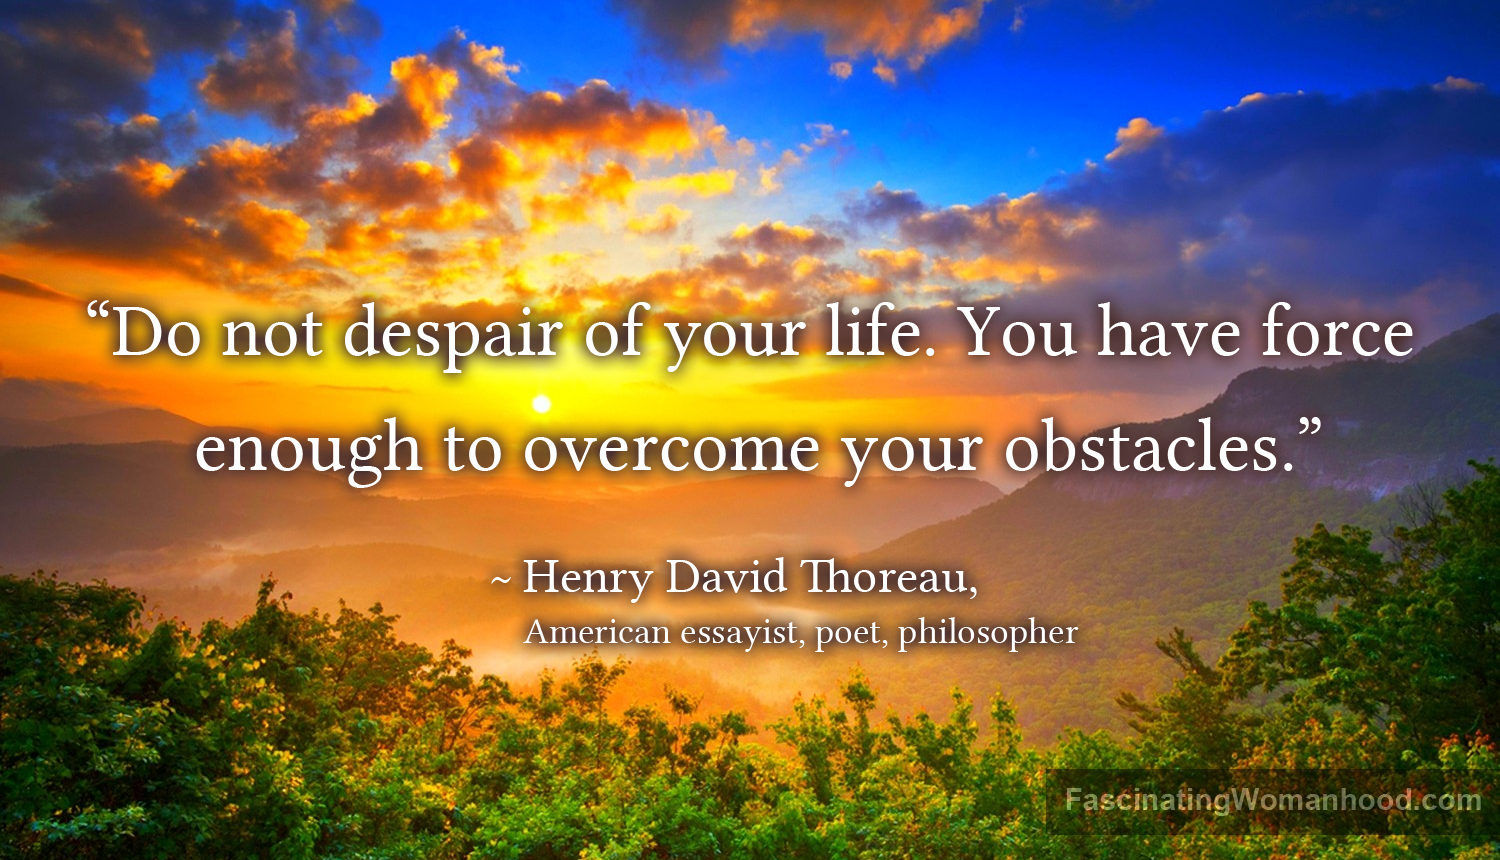 A Quote by Henry David Thoreau.jpg